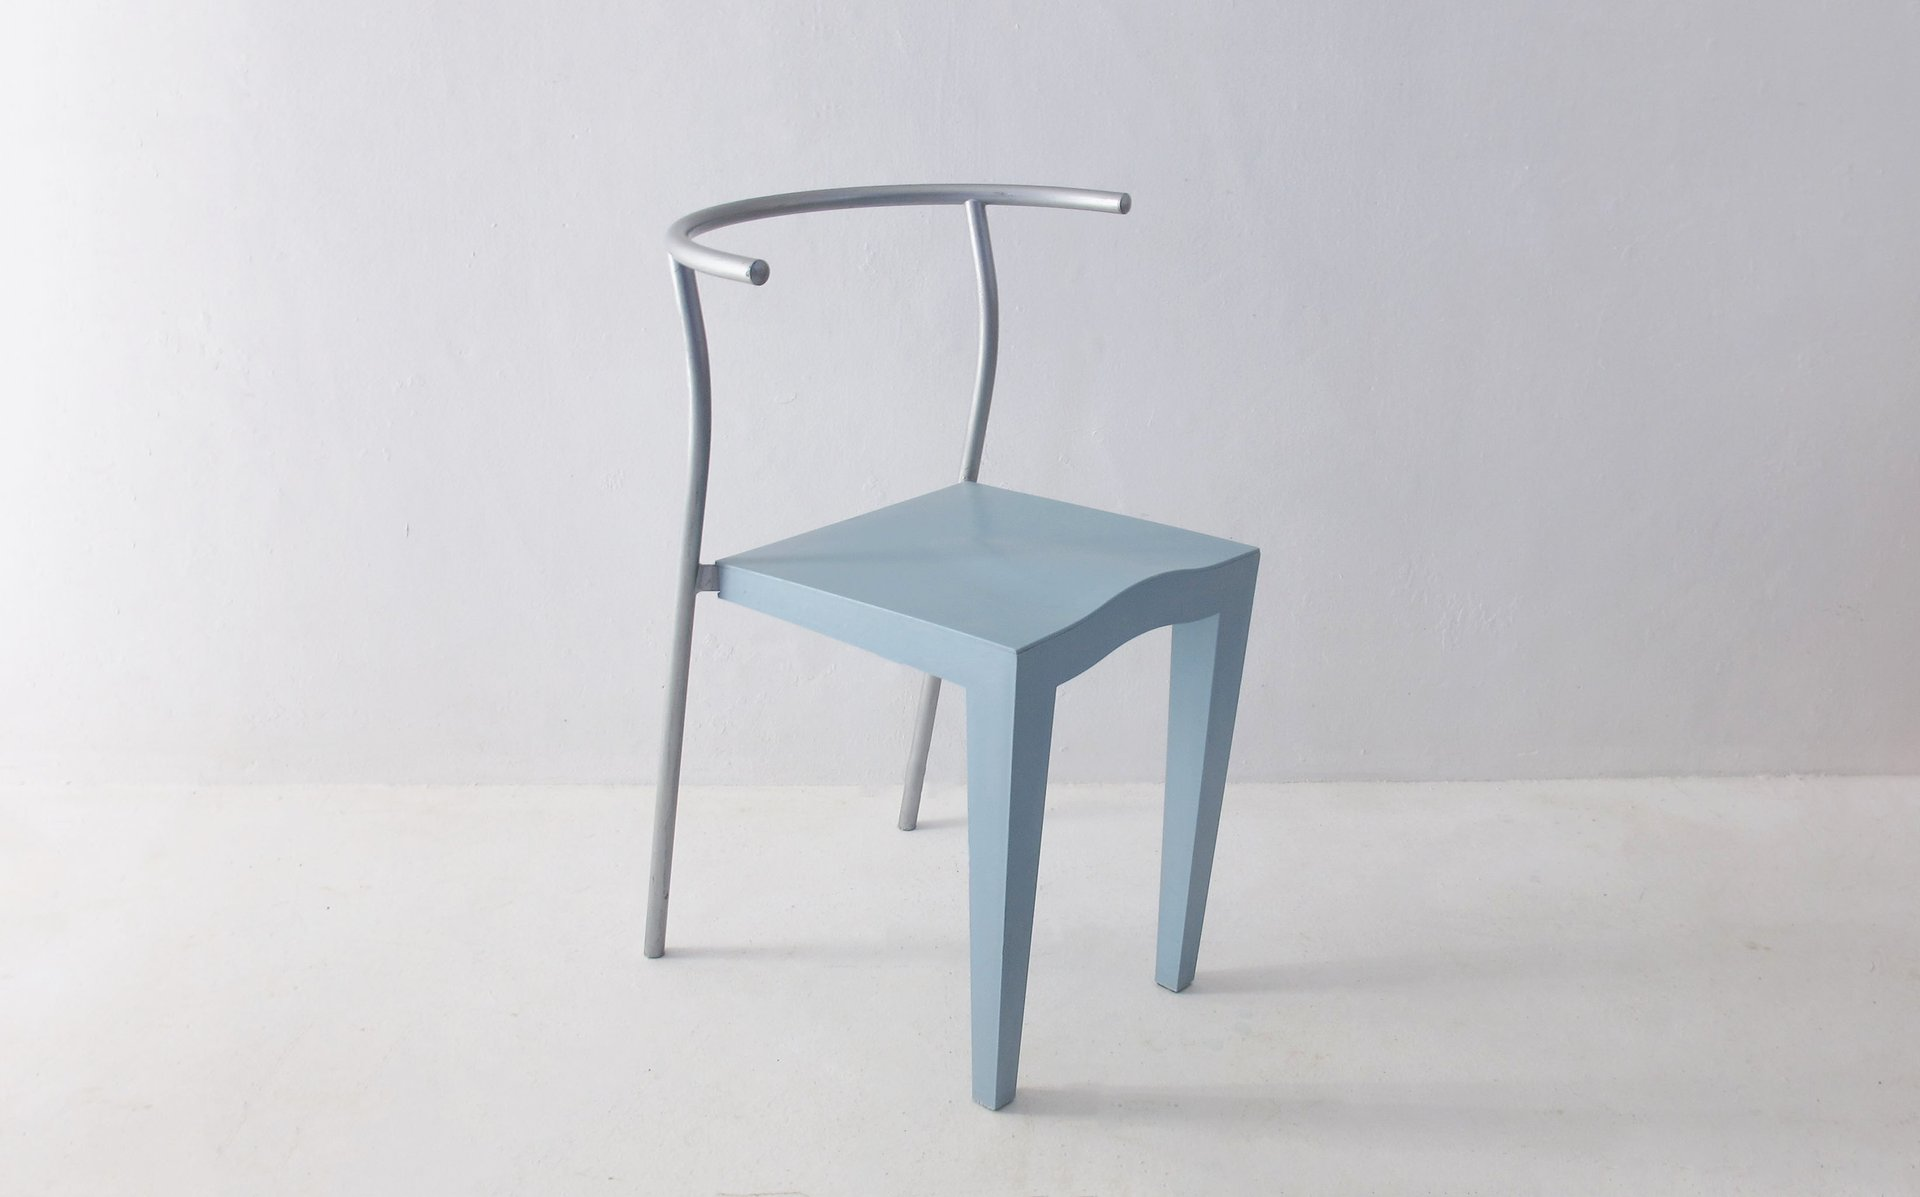 Vintage French Chairs By Philippe Starck For Kartell, 1980s, Set Of 8 For  Sale At Pamono